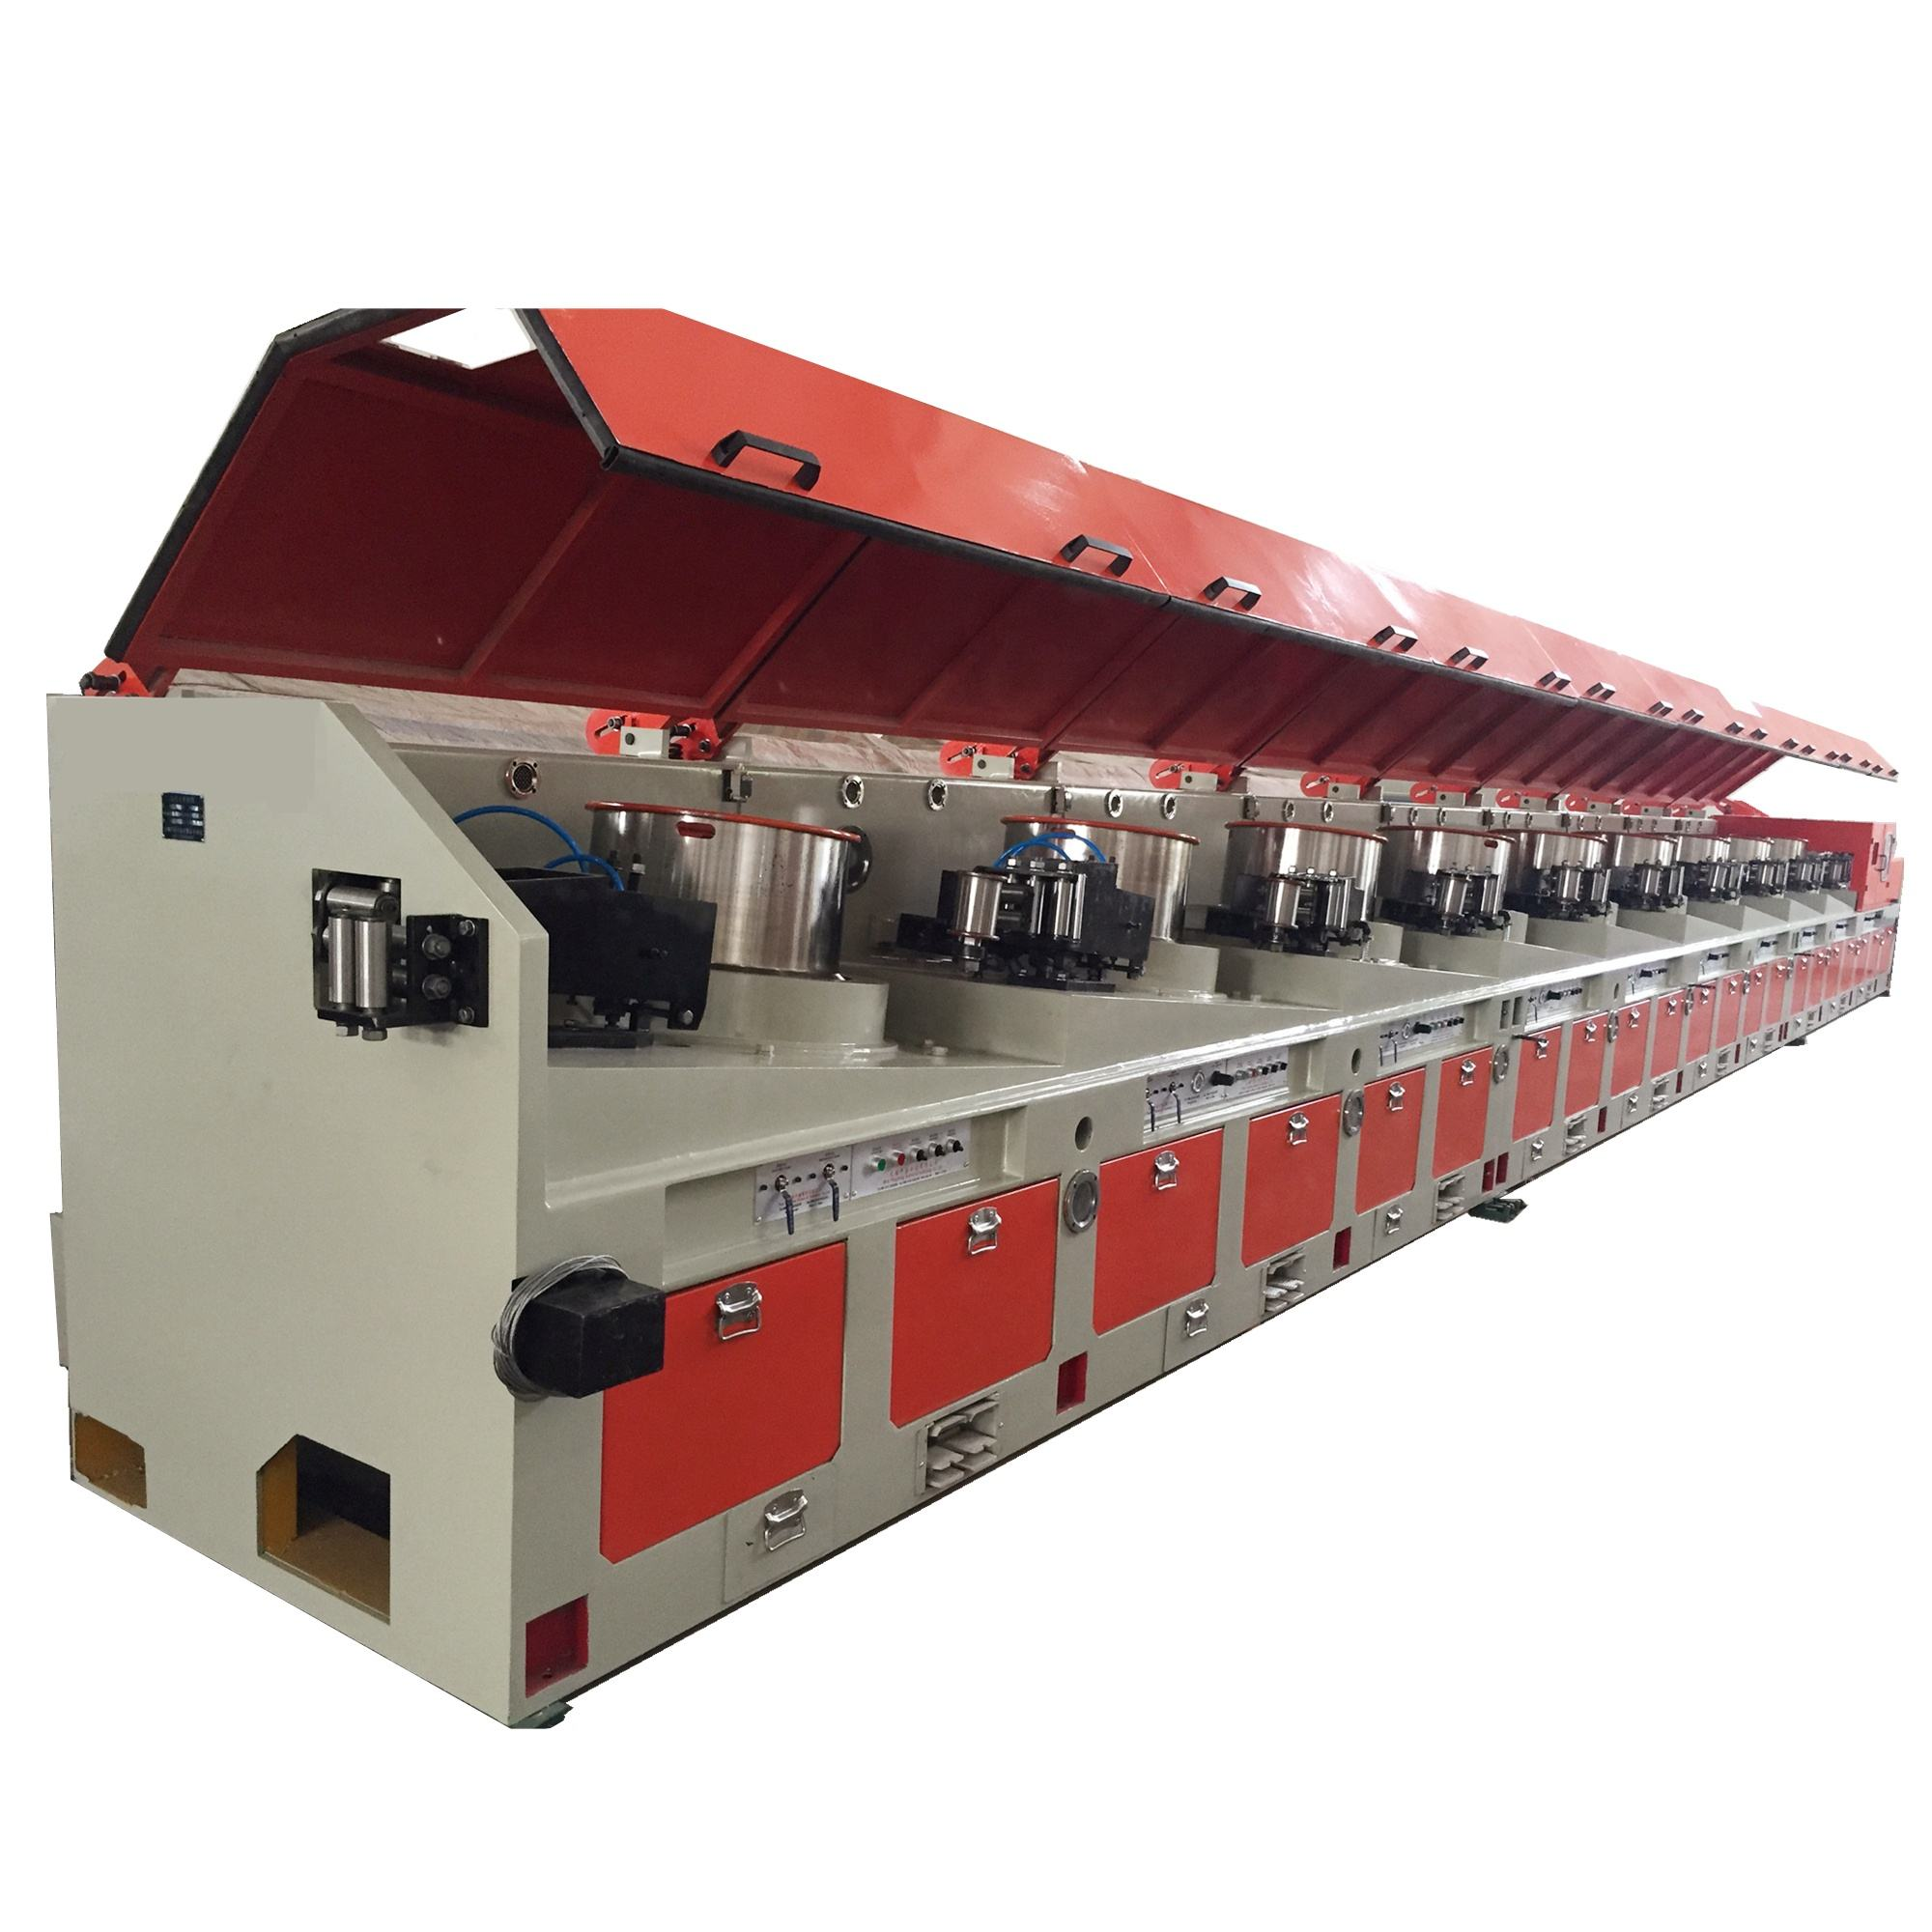 Straight-line type wire drawing machine